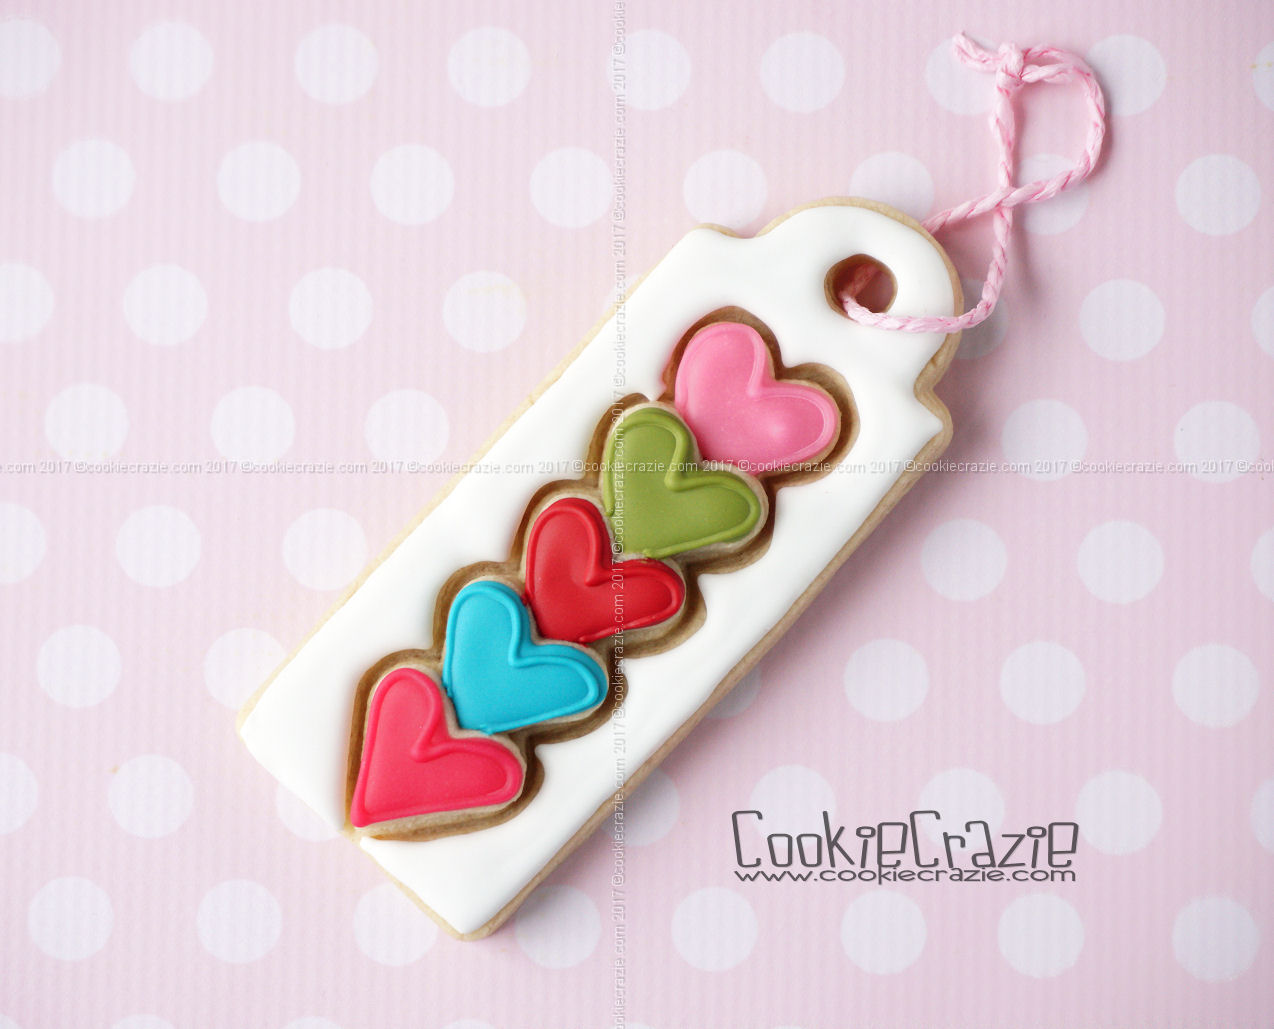 Stacked Hearts Valentine Gift Tag Decorated Sugar Cookie YouTube video  HERE